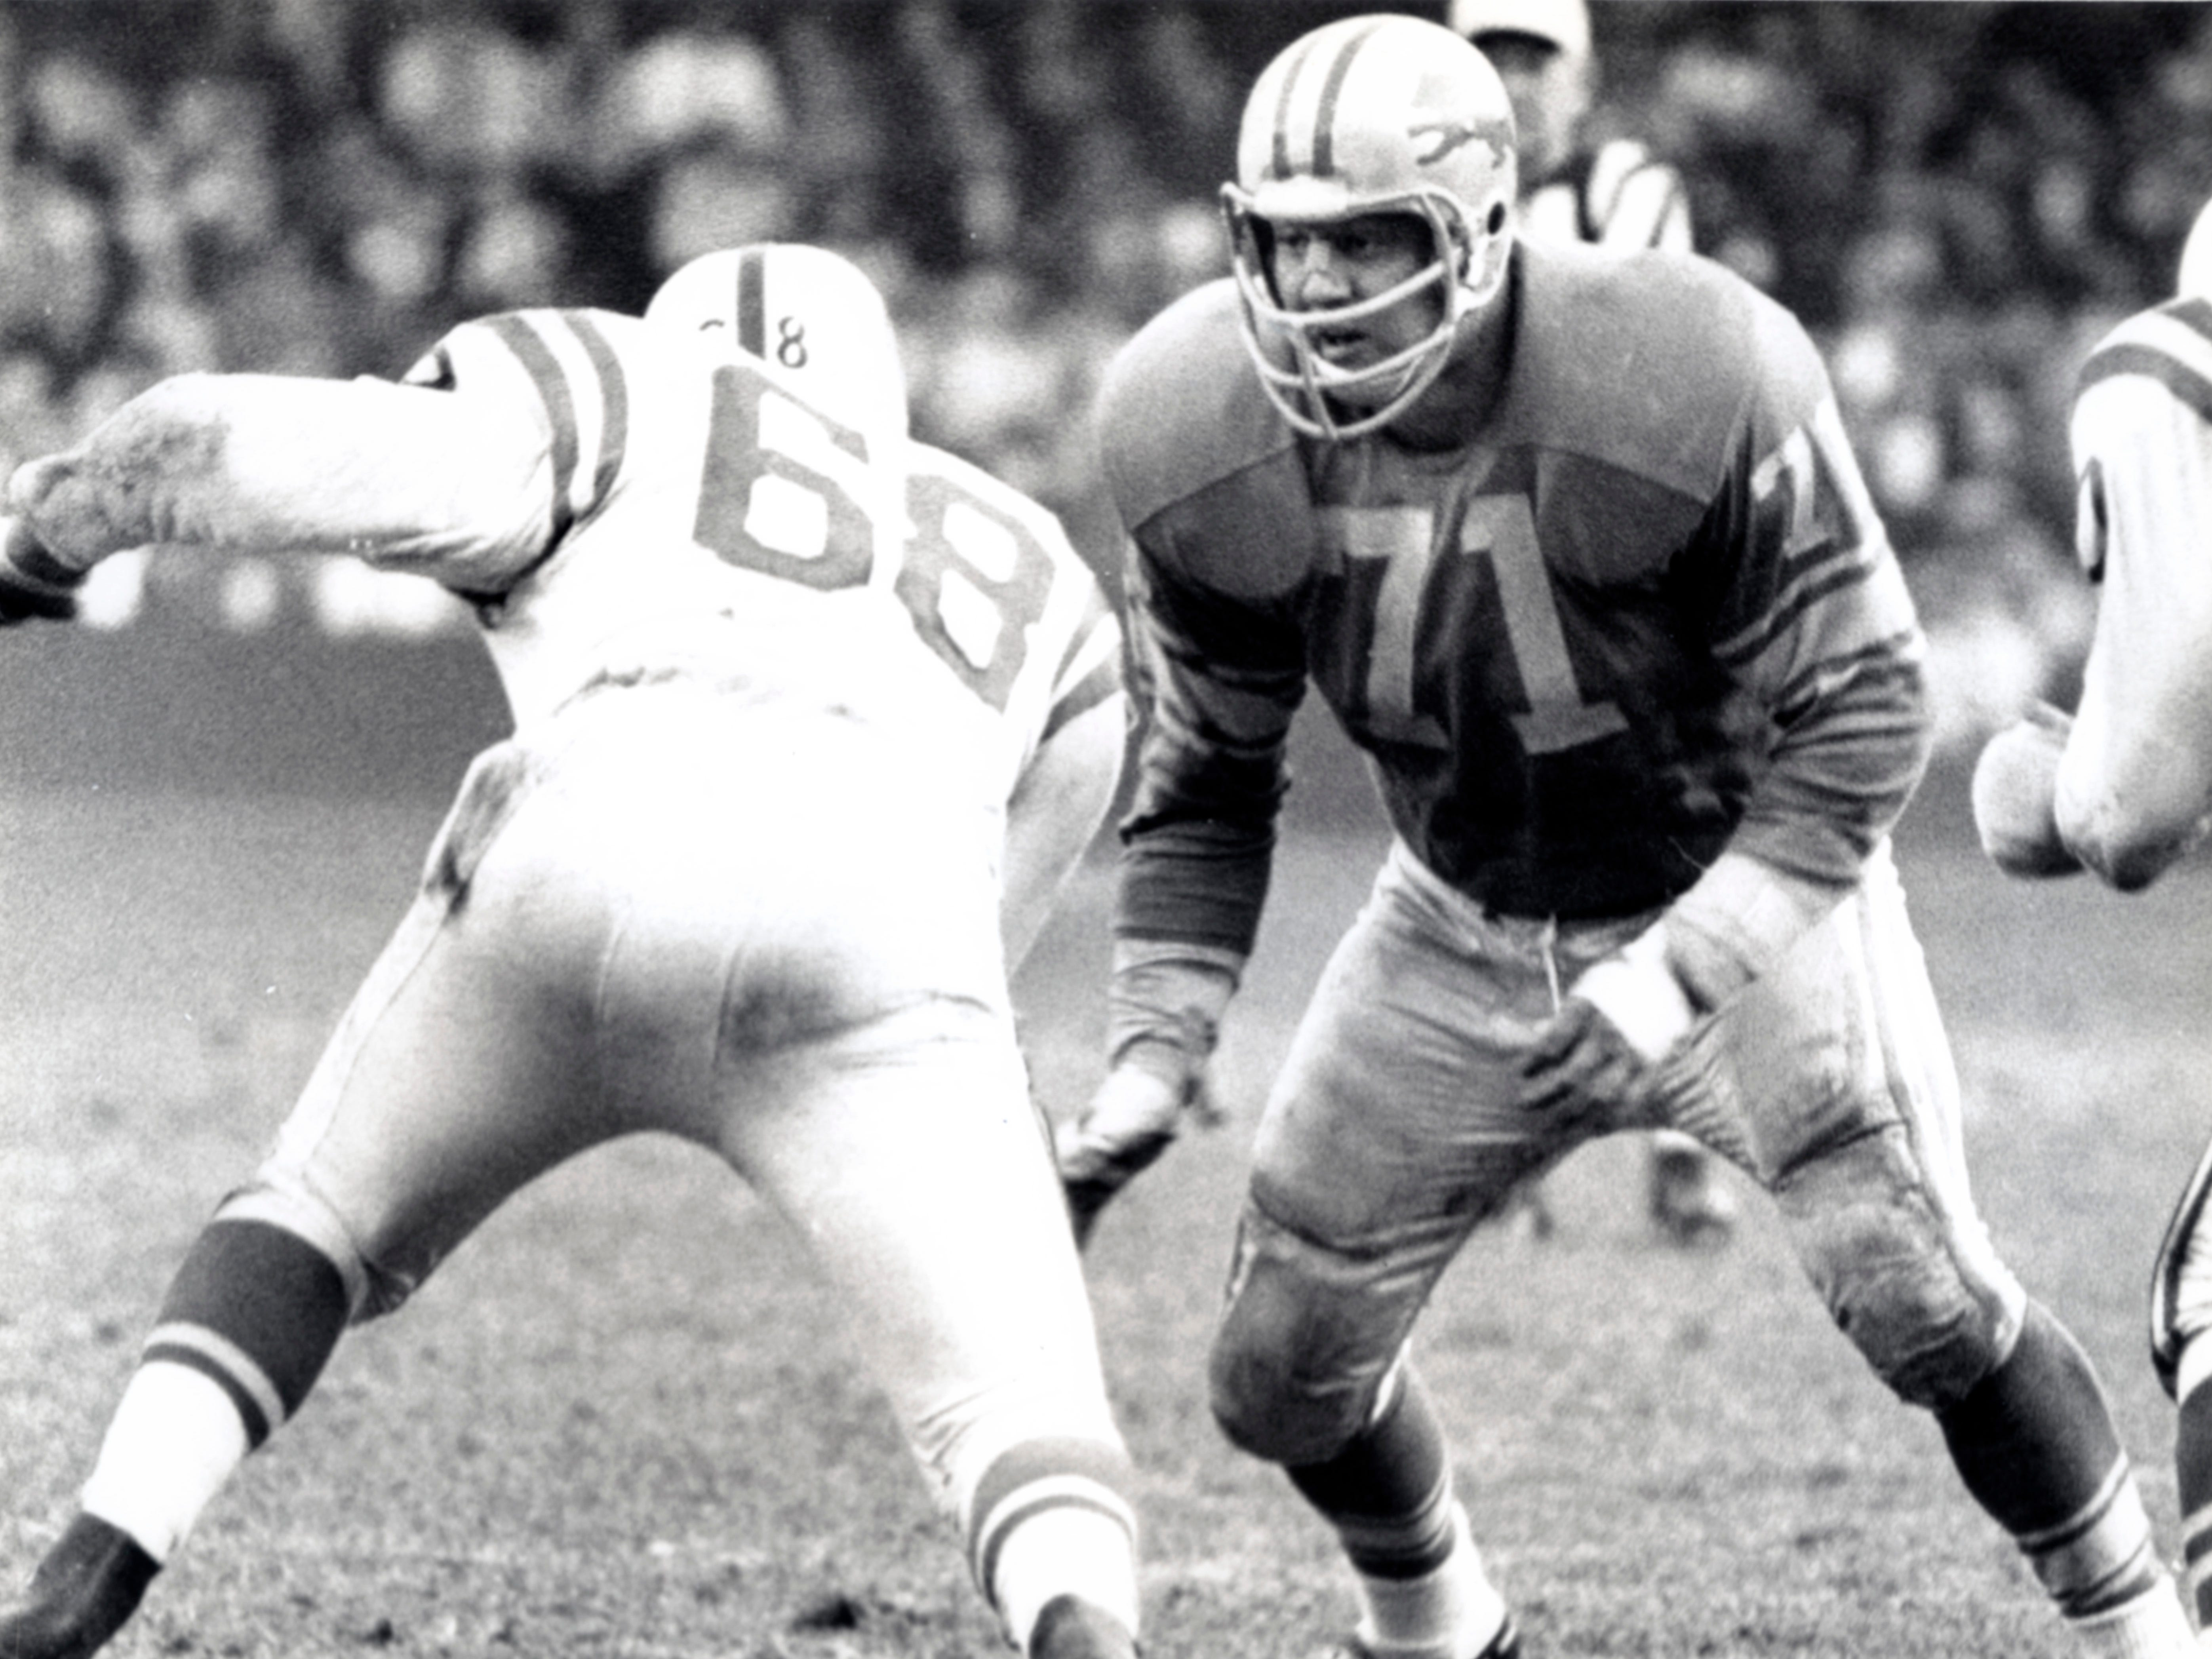 Detroit Lions defensive tackle Alex Karras (71) in action against the Baltimore Colts at Tigers Stadium in 1964. Karras, a former Iowa Hawkeye, was taken 10th overall by the Detroit Lions in the 1958 NFL Draft.